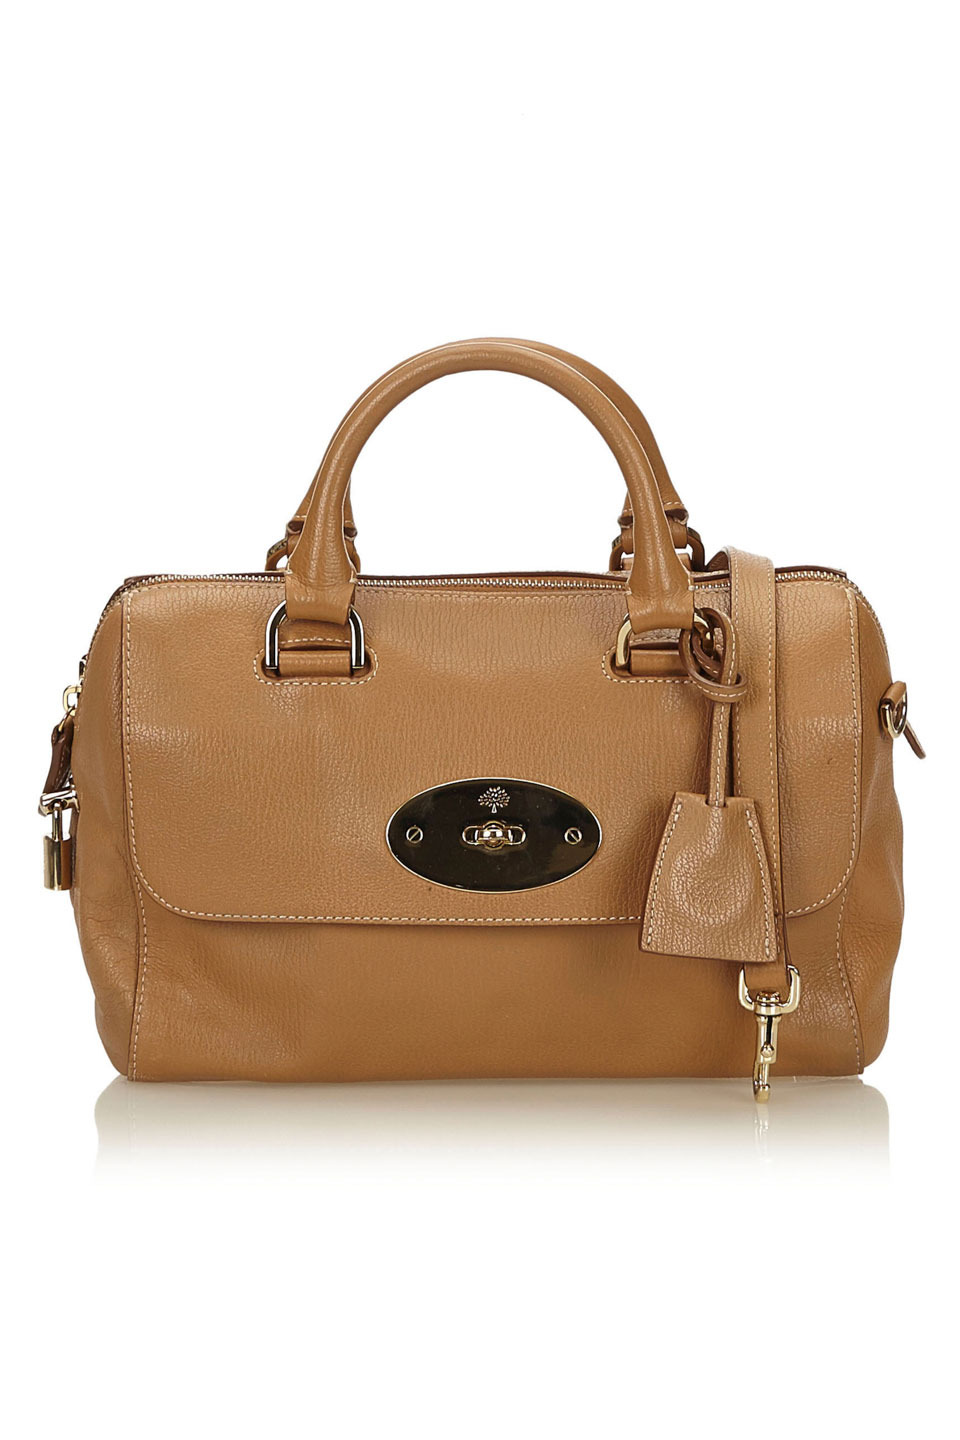 MULBERRY LEATHER DEL REY SATCHEL IN ...